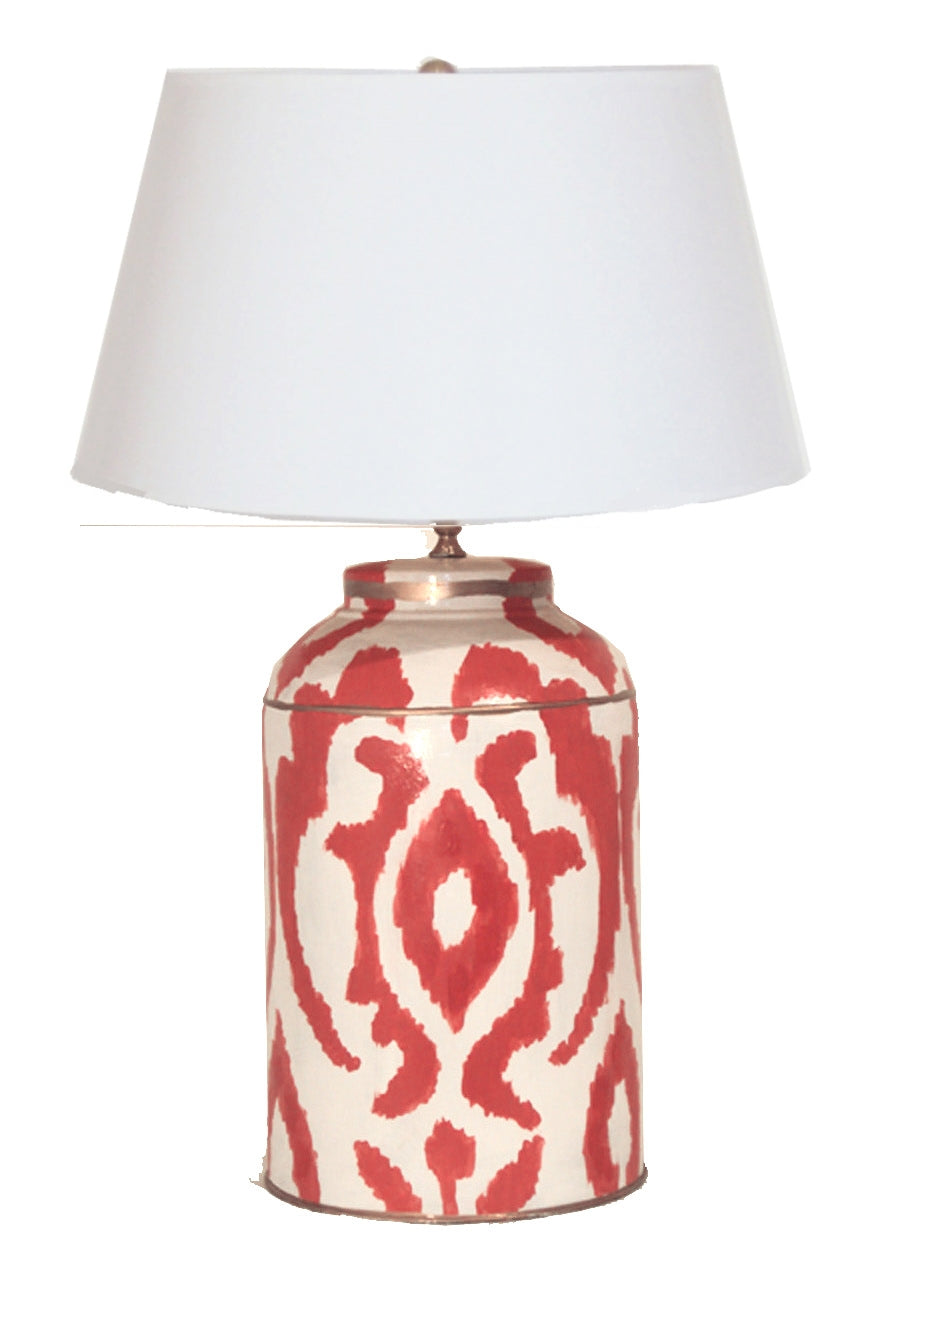 Persimmon Ikat  Tea Caddy Lamp with White Shade